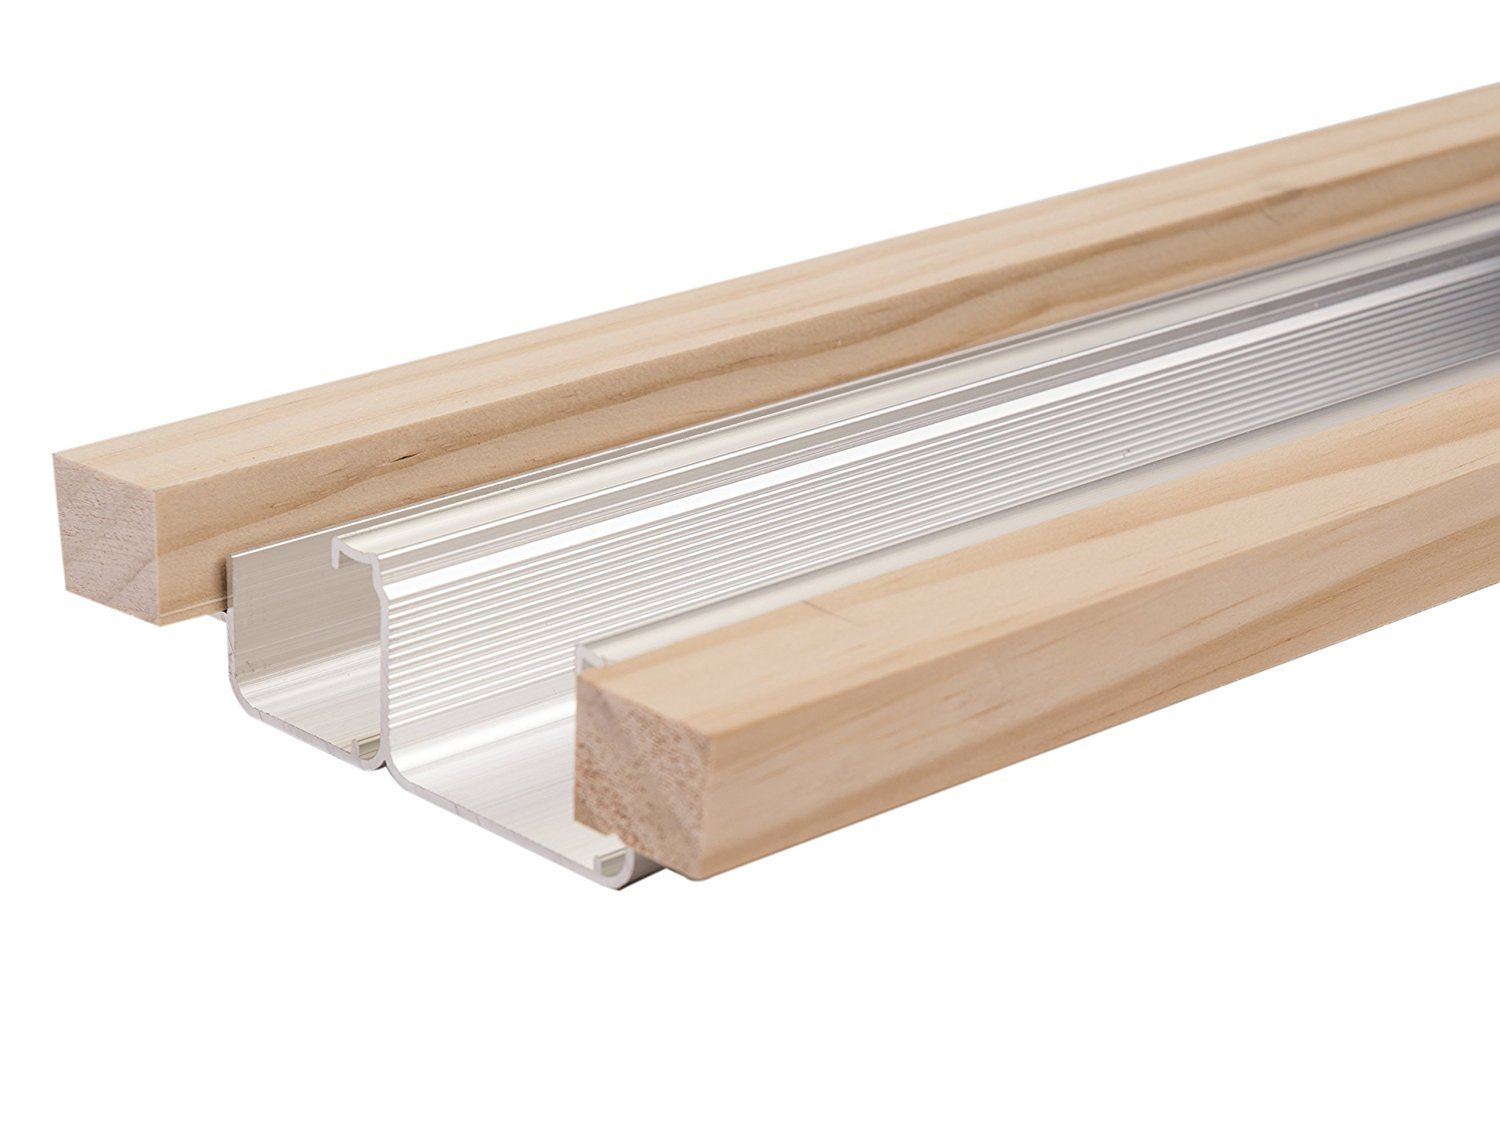 Johnson Hardware 2222 Bypass Track with Wood Header - 48''